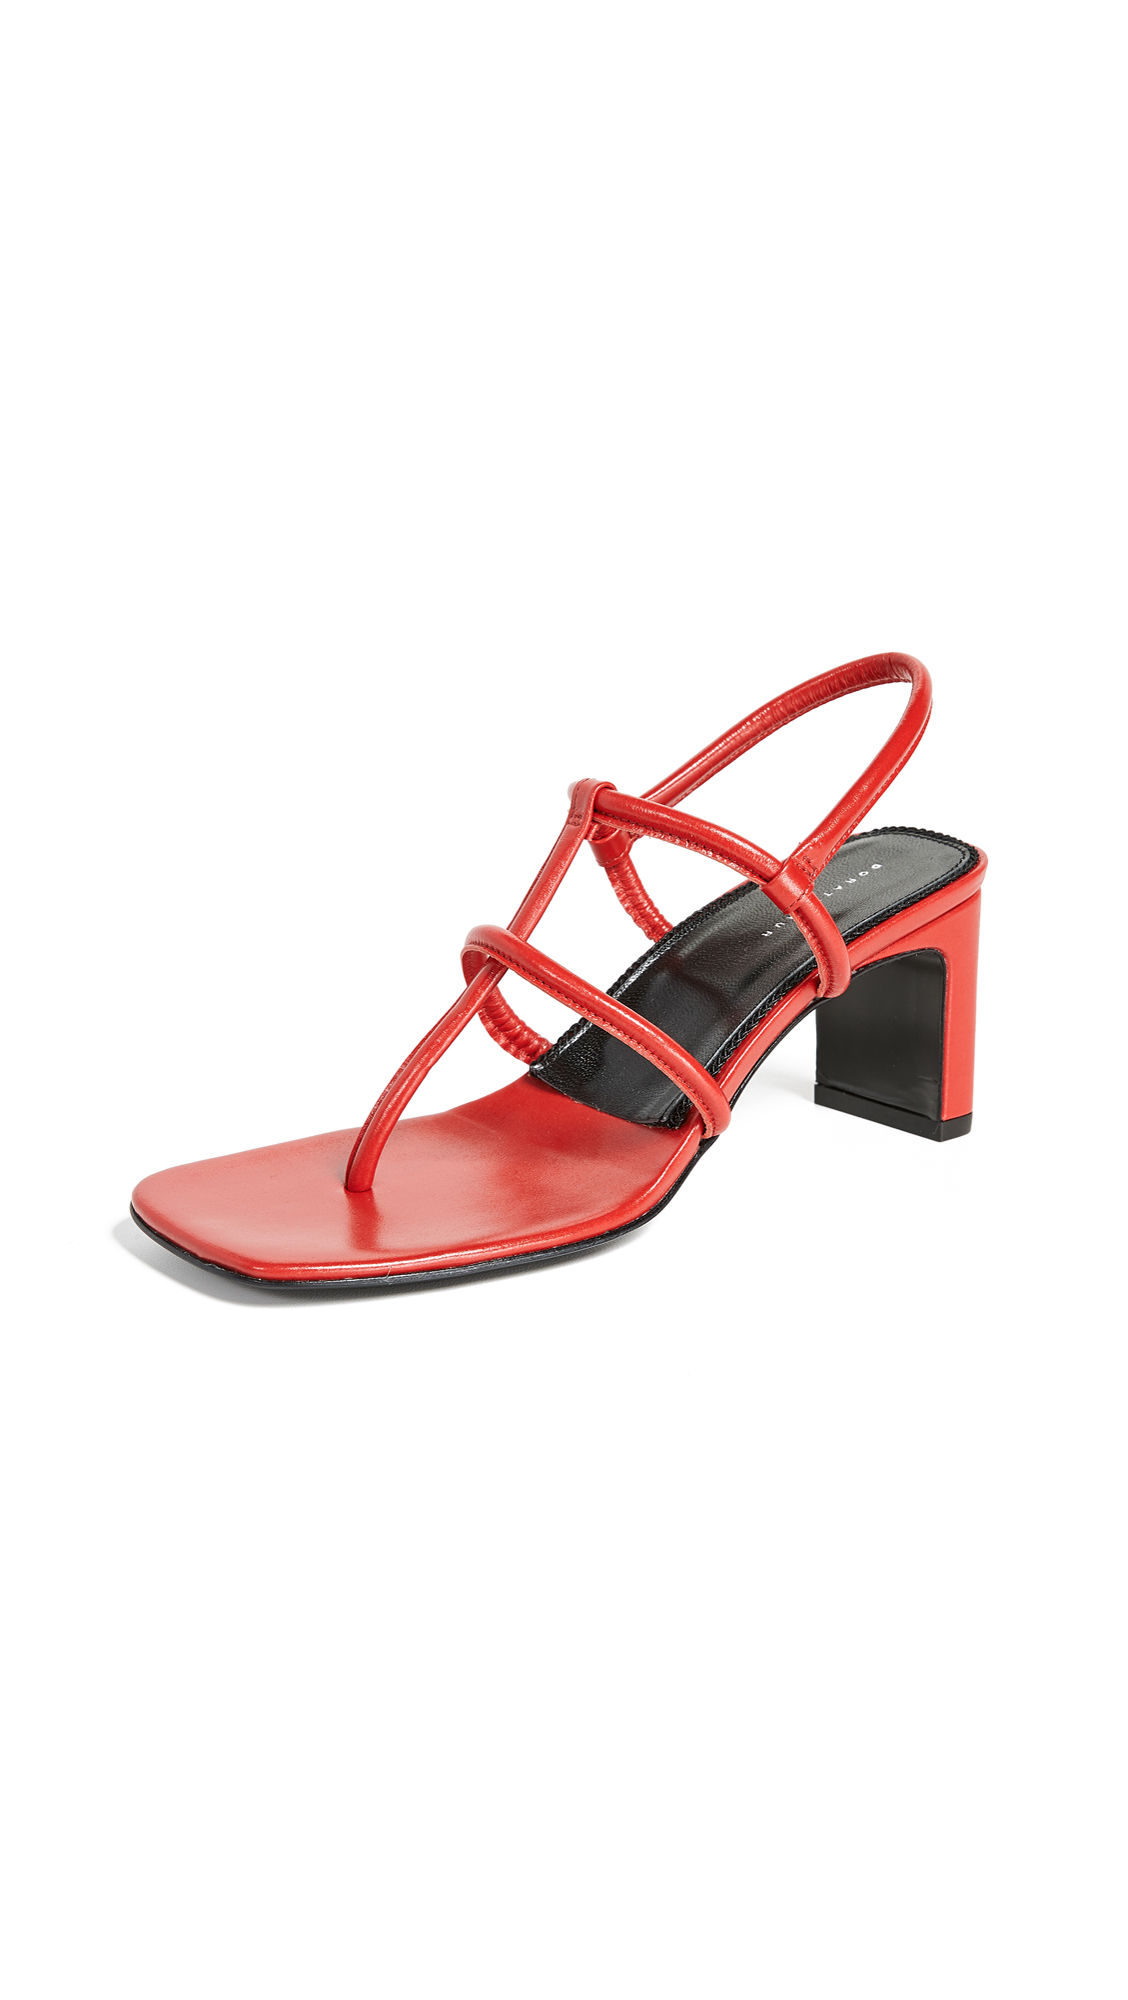 Dorateymur Thong Heeled Sandals - Red